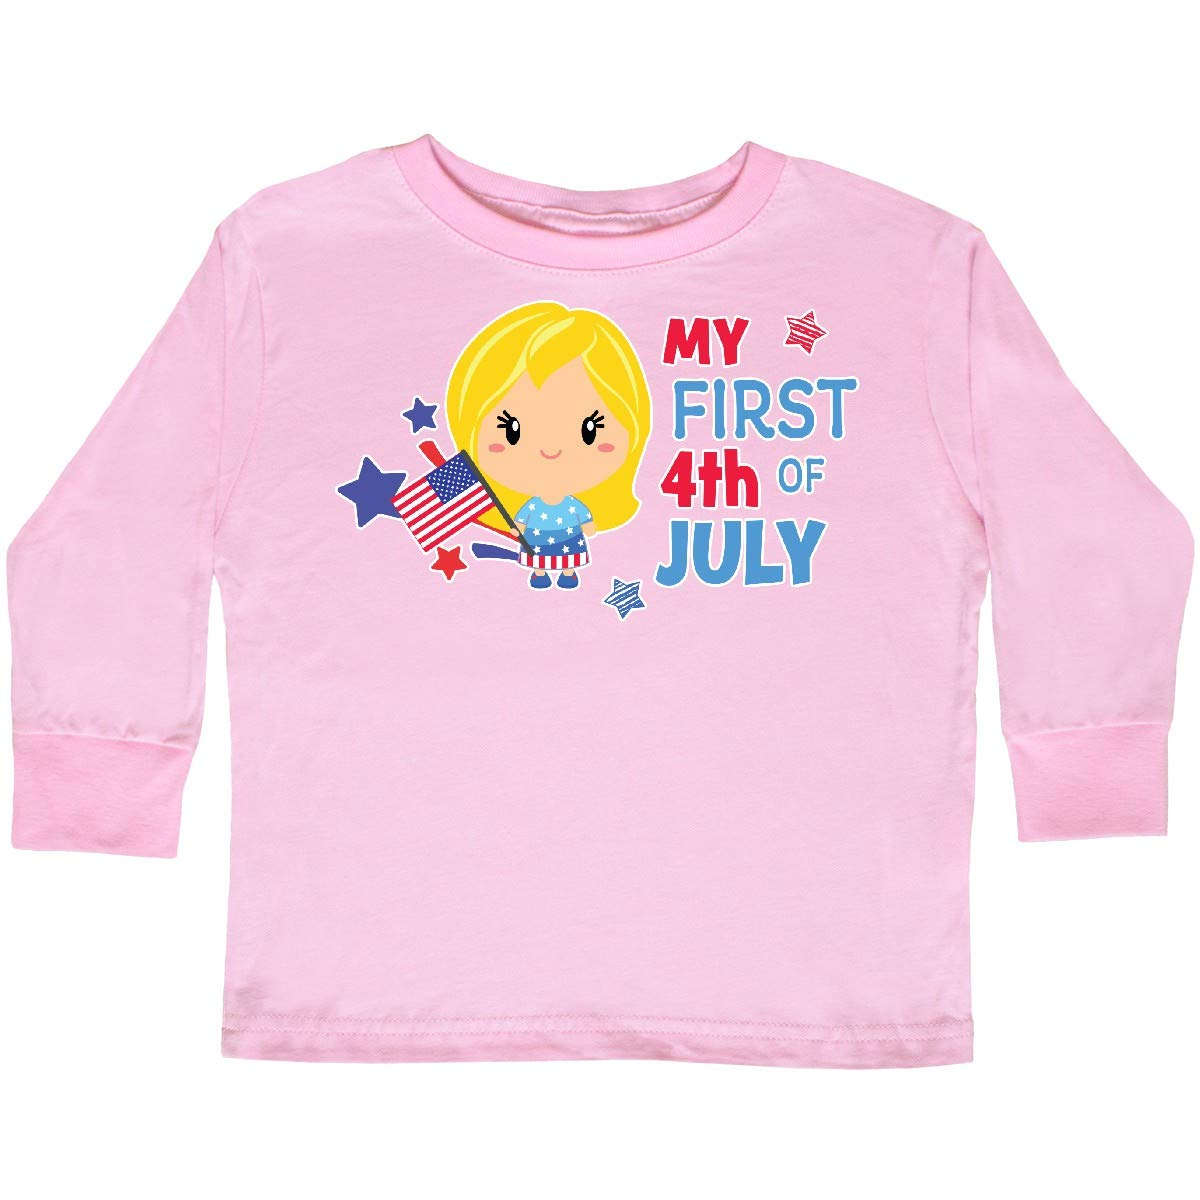 inktastic My First 4th of July with Blonde Haired Toddler Long Sleeve T-Shirt